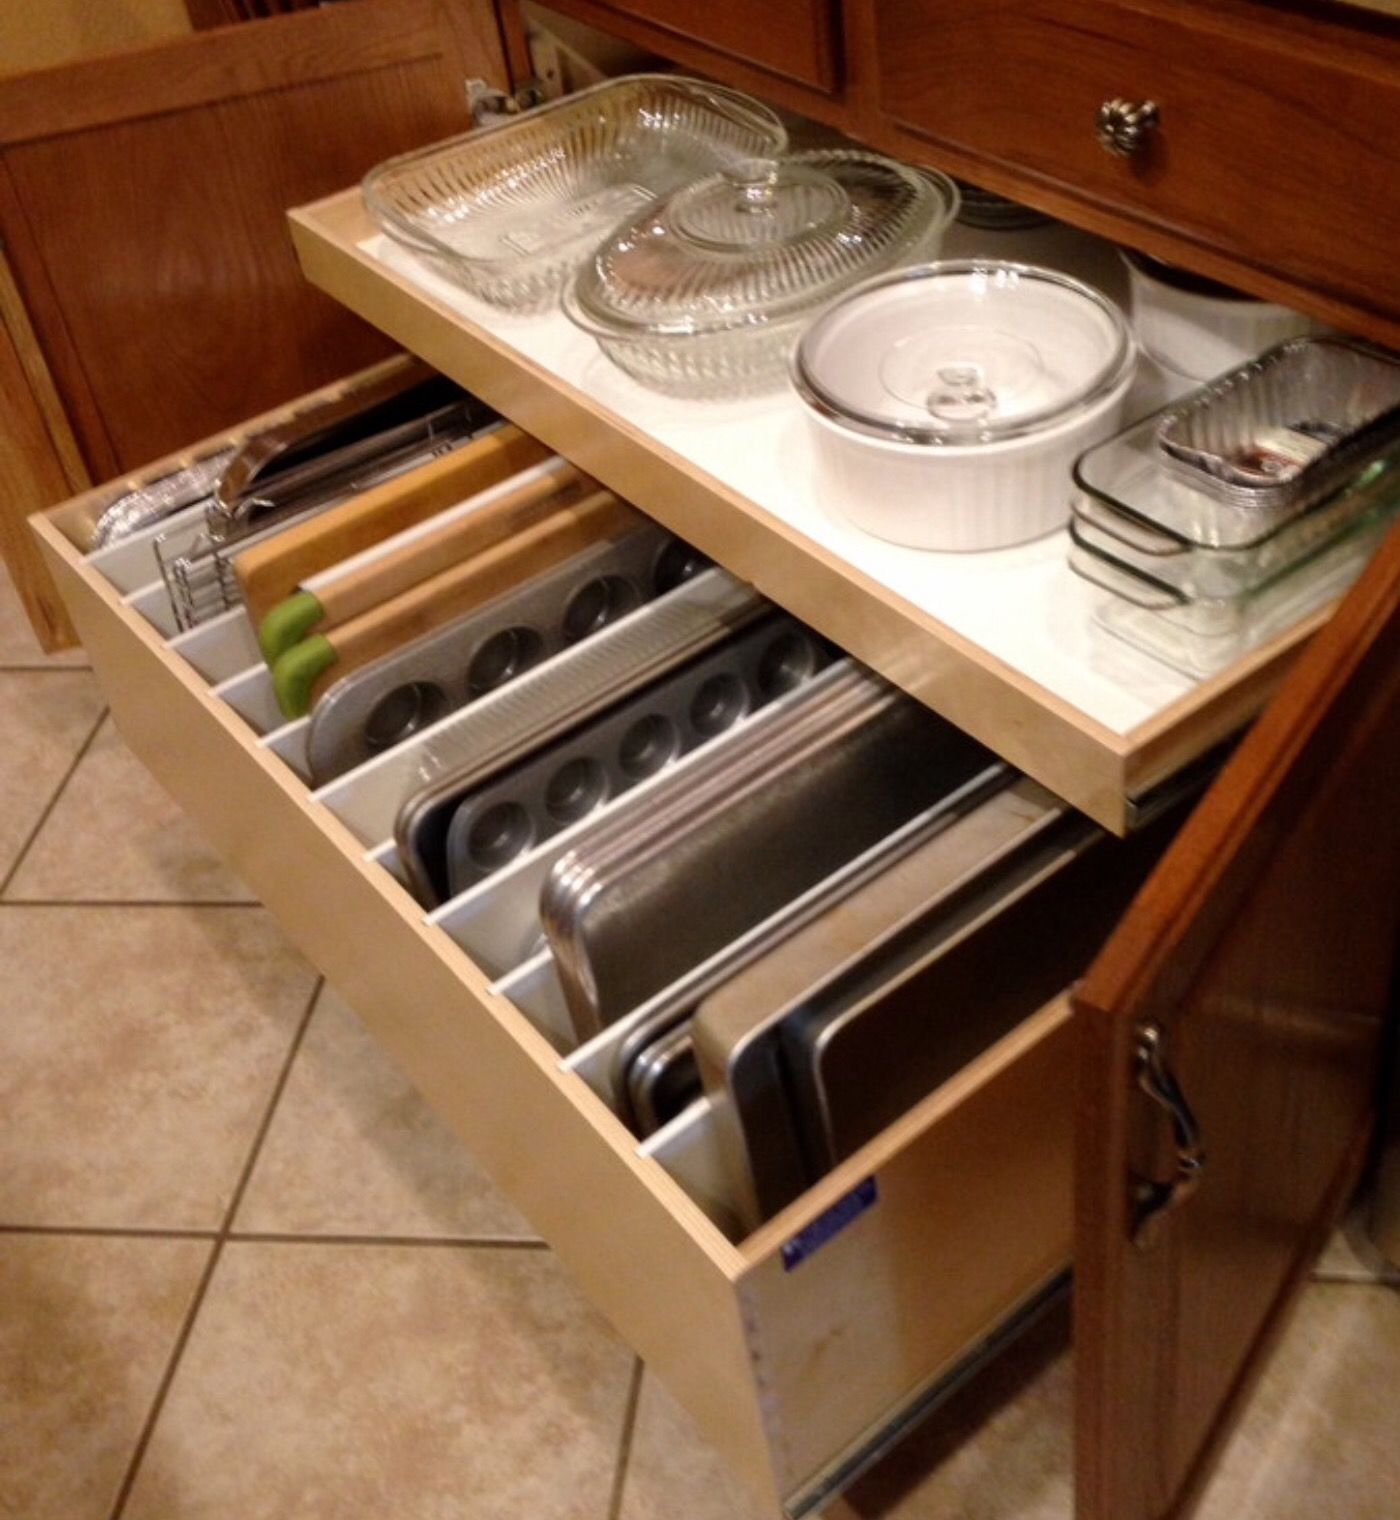 s cabinet out simplehuman container organizer organizers kitchen store pull cm the organiz